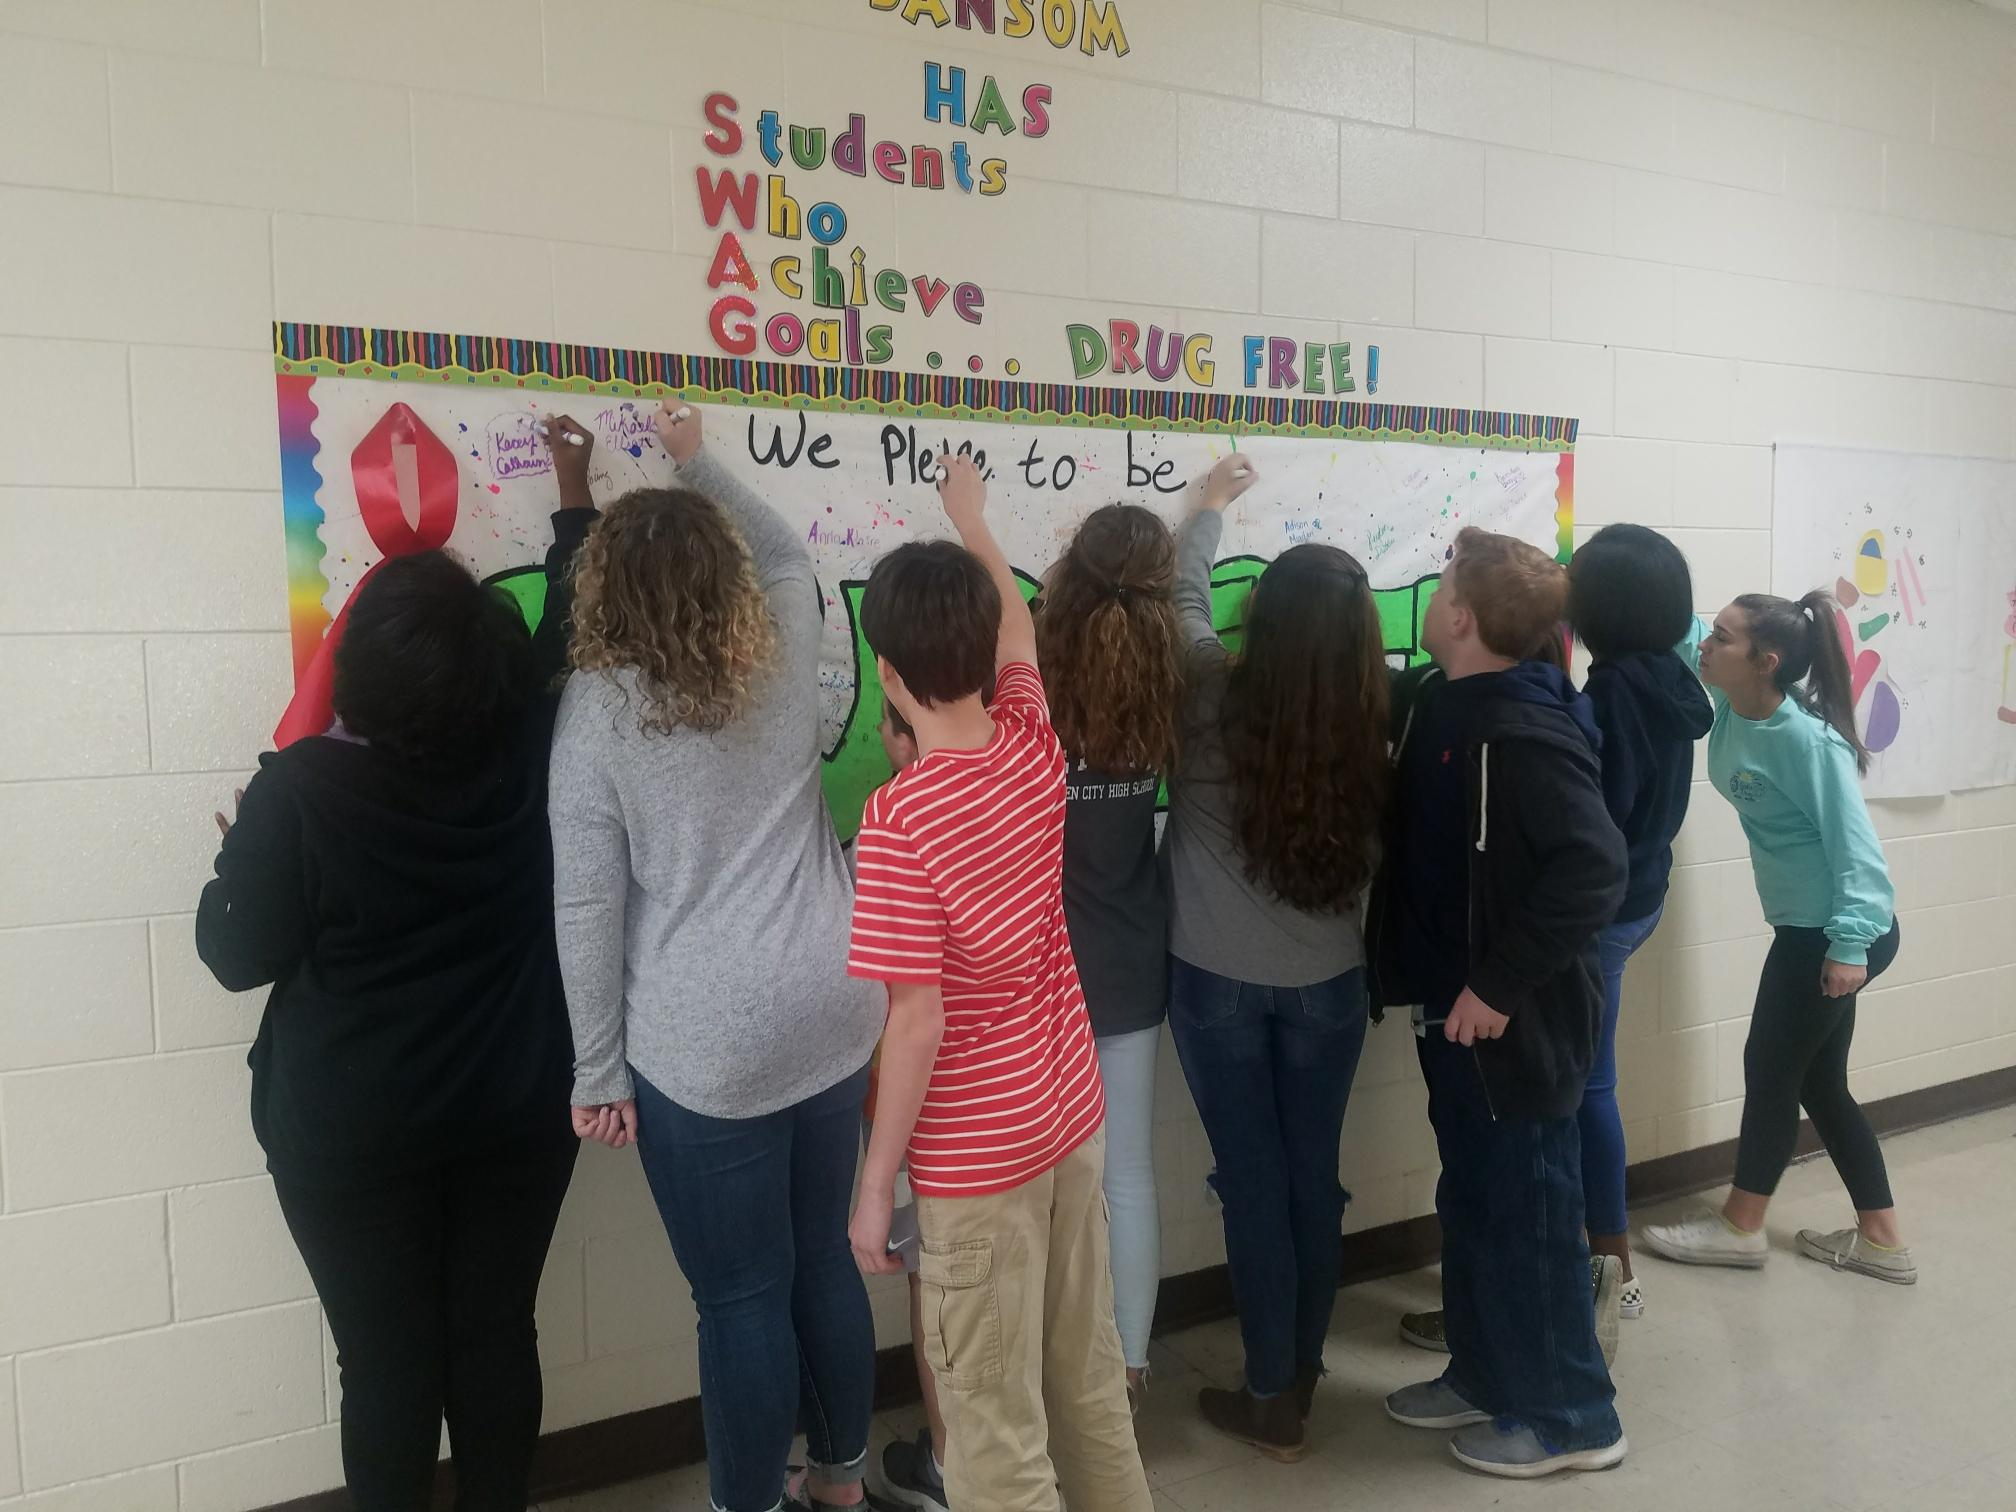 A group of 7th grade students sign pledging to be drug free